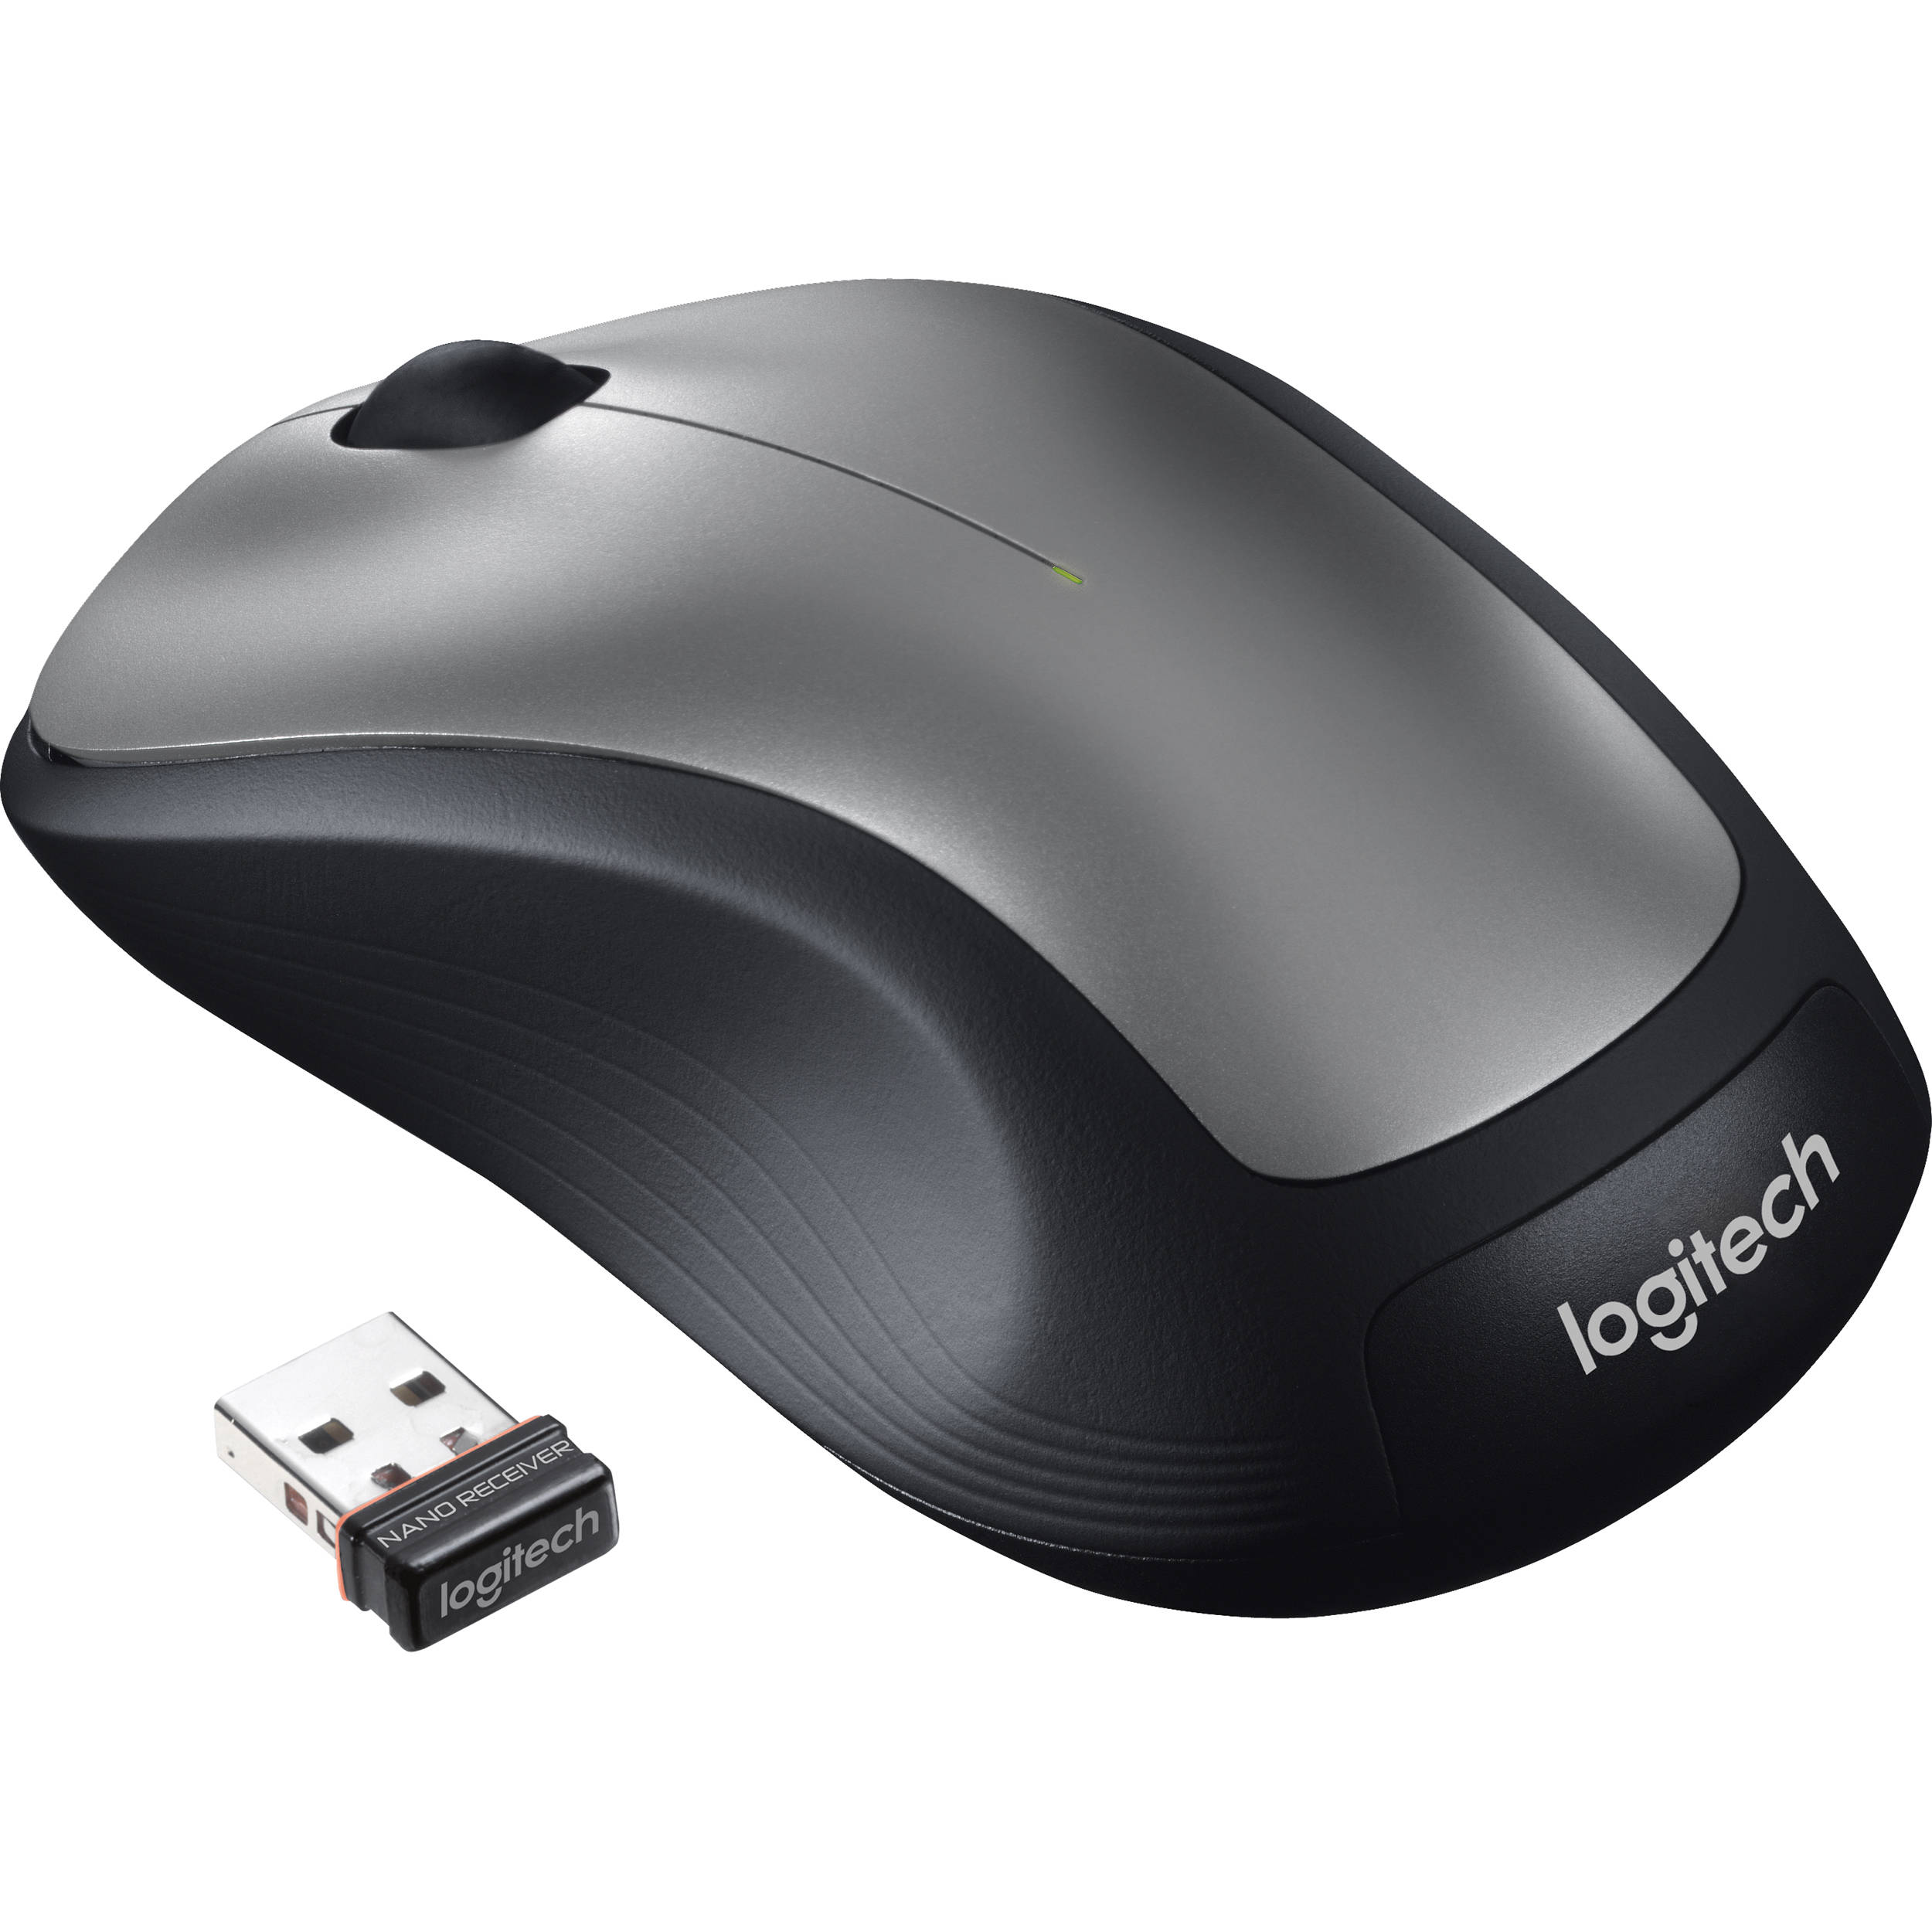 Logitech M310 Wireless Mouse Silver 910 001675 Bh Photo Video Advence W10